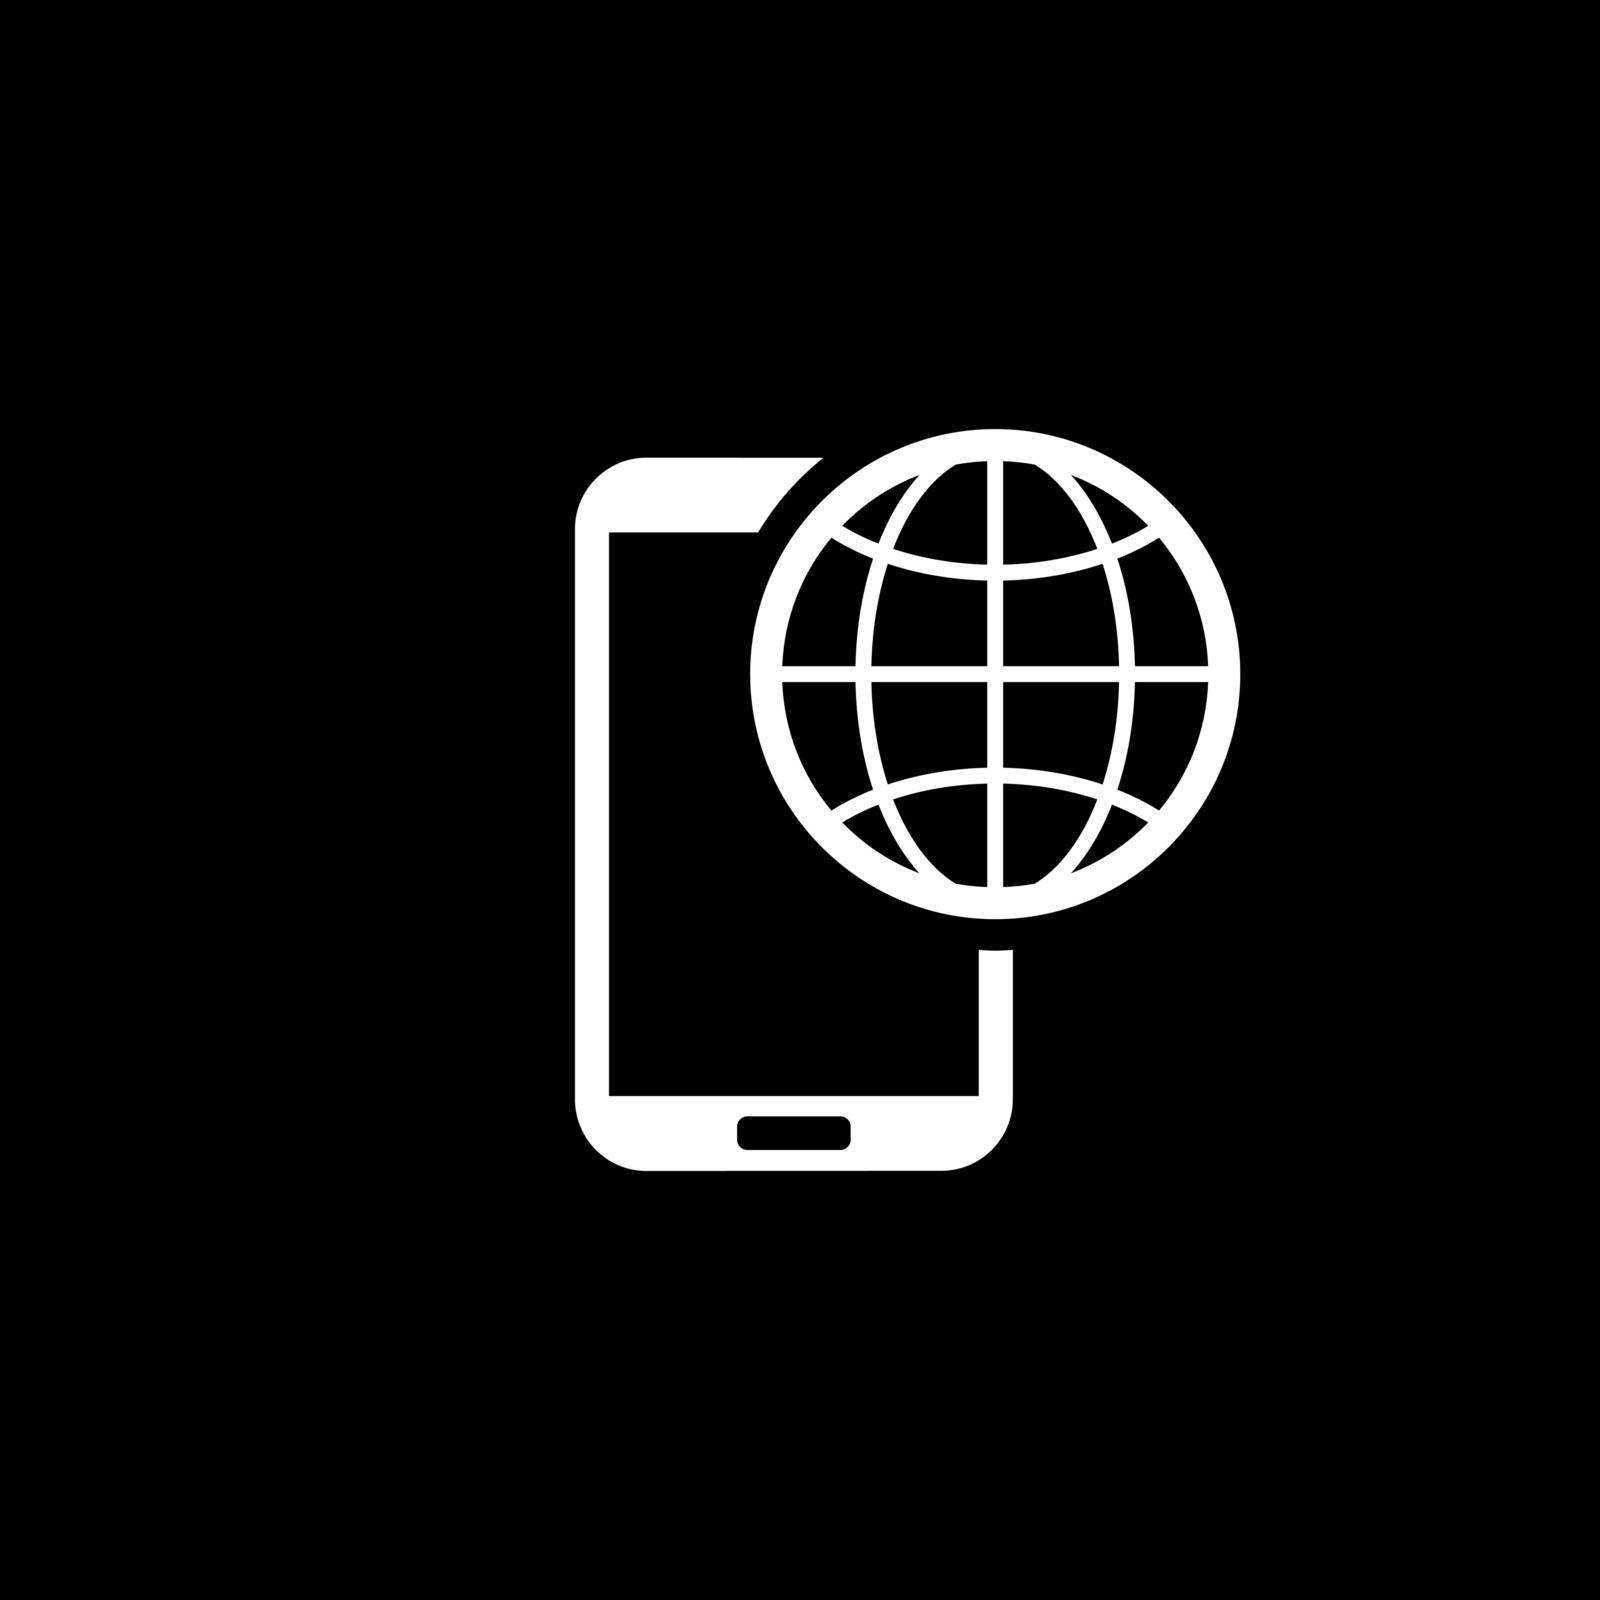 International Roaming Icon. Flat Design. Mobile Devices and Services Concept. Isolated Illustration.